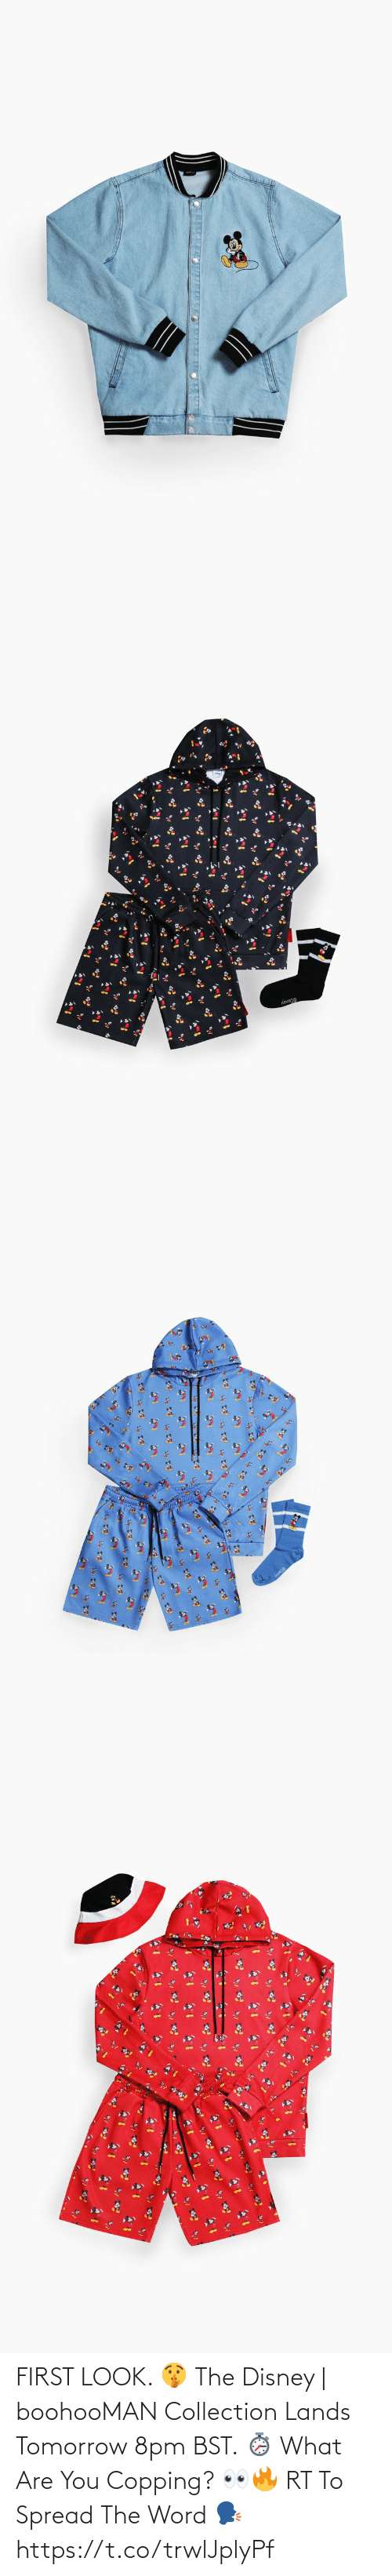 what are: FIRST LOOK. 🤫  The Disney | boohooMAN Collection Lands Tomorrow 8pm BST. ⏱️  What Are You Copping? 👀🔥  RT To Spread The Word 🗣️ https://t.co/trwlJplyPf